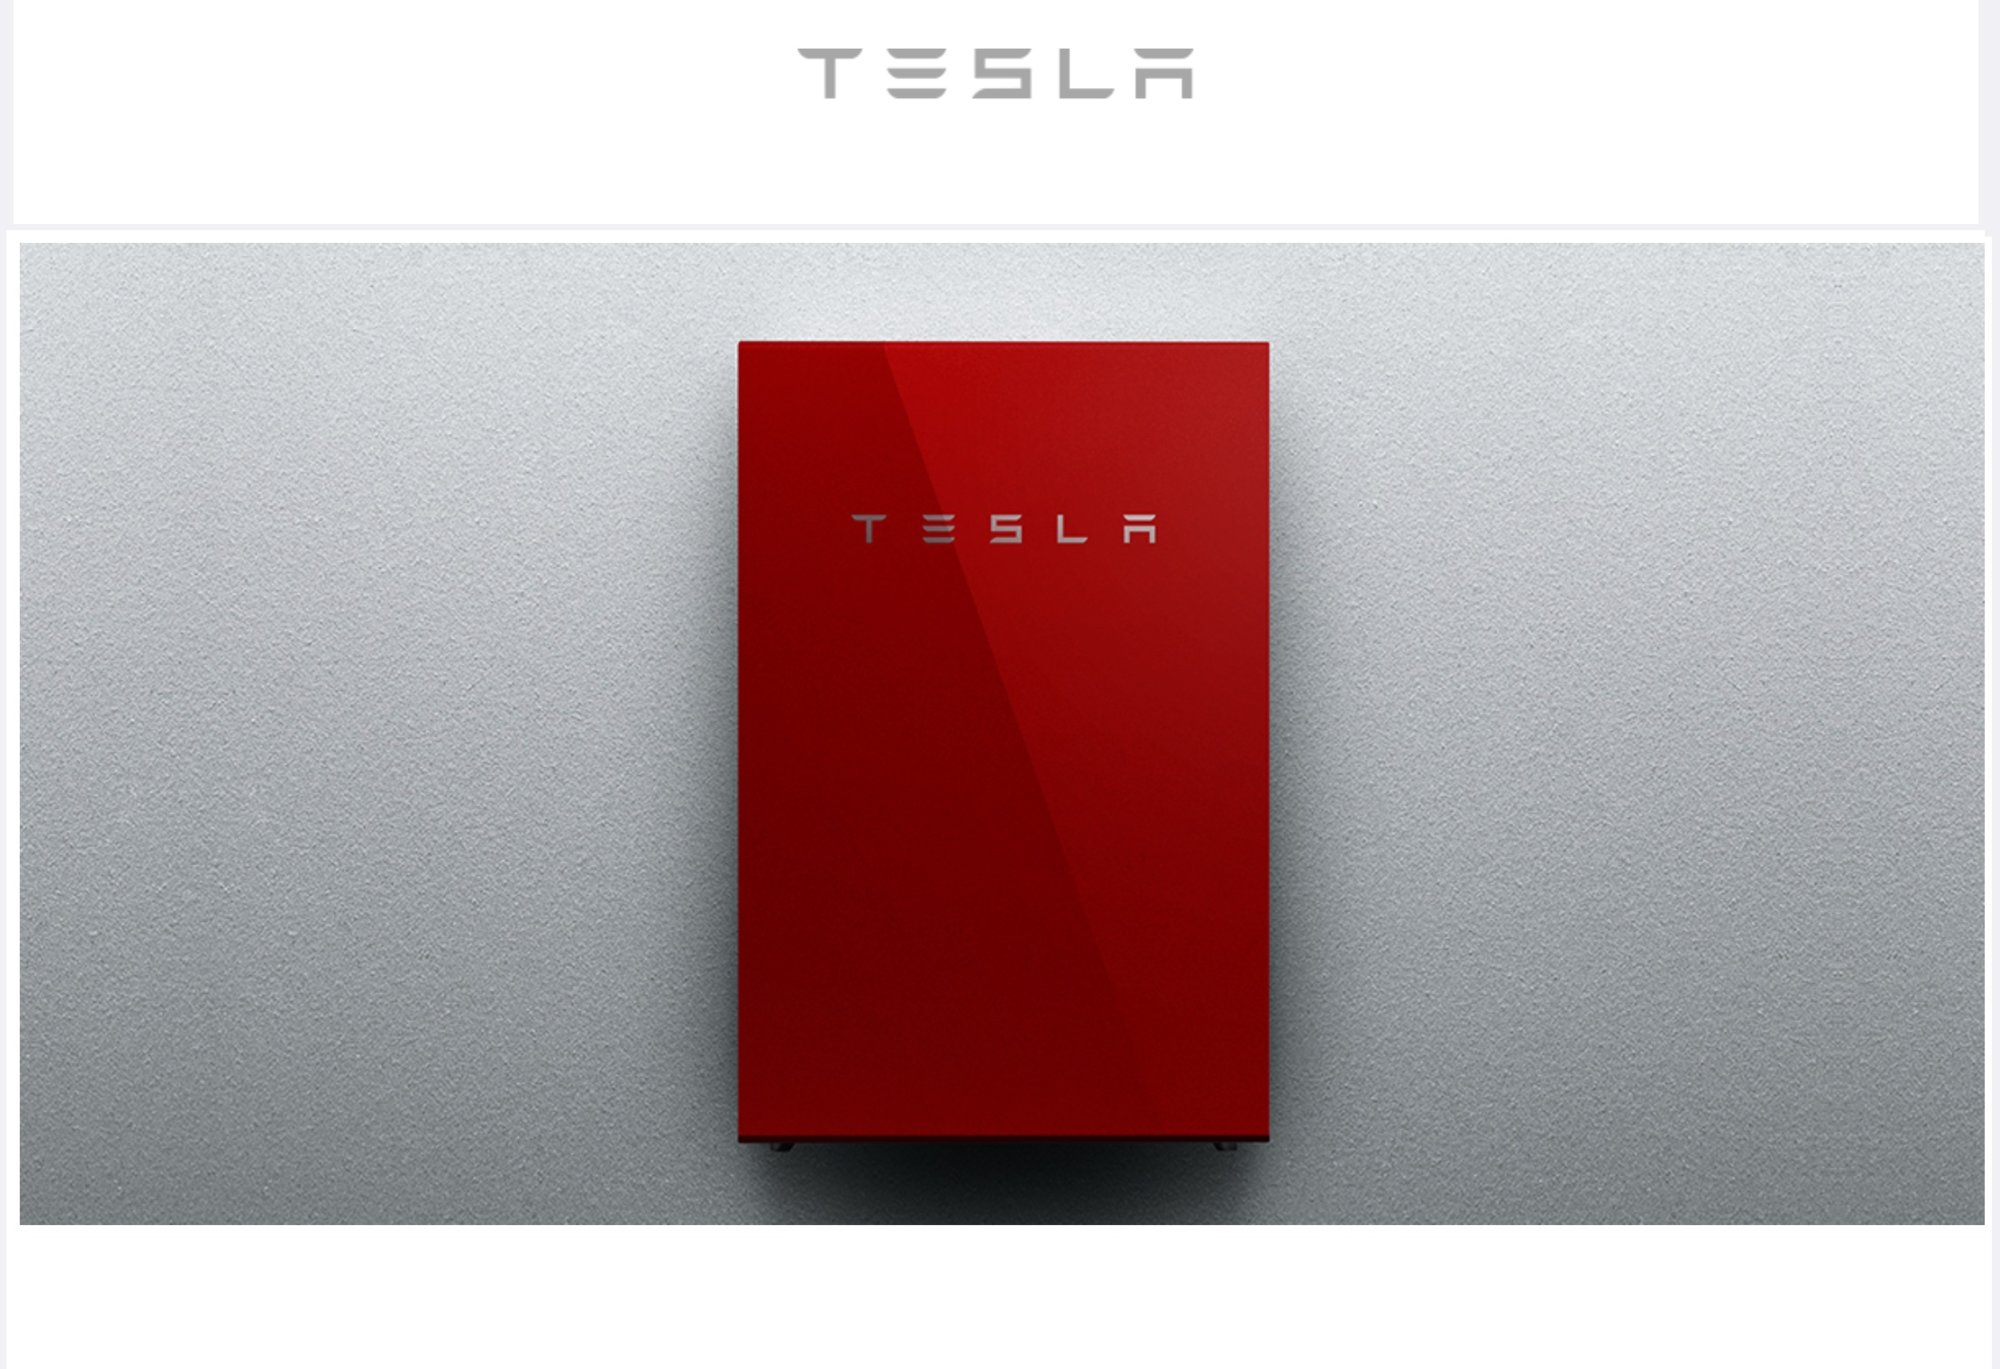 tesla-red-founders-series-powerwall-2.jpg